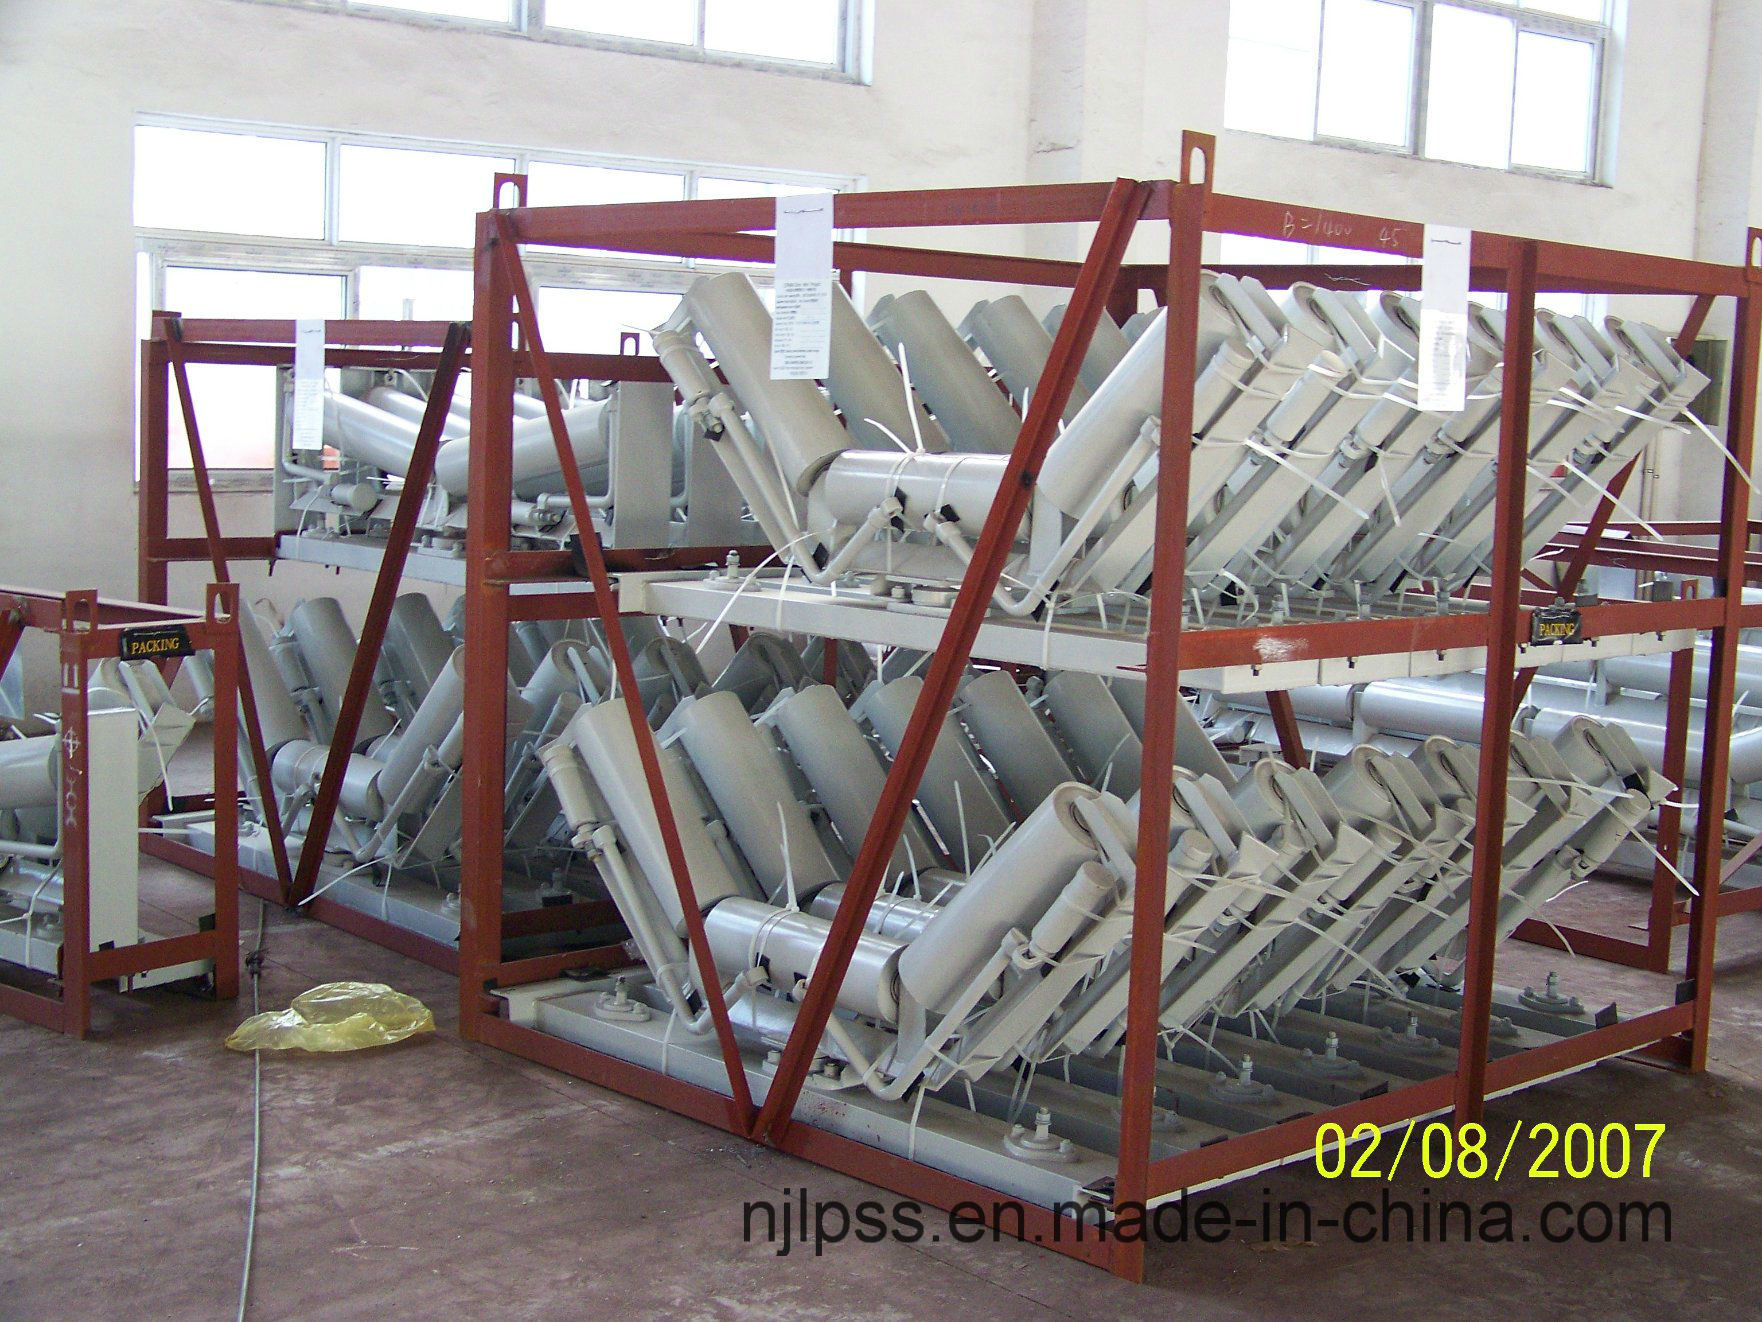 Carrier Self Aligning Roller Group for Belt Conveyor Zds-S-2